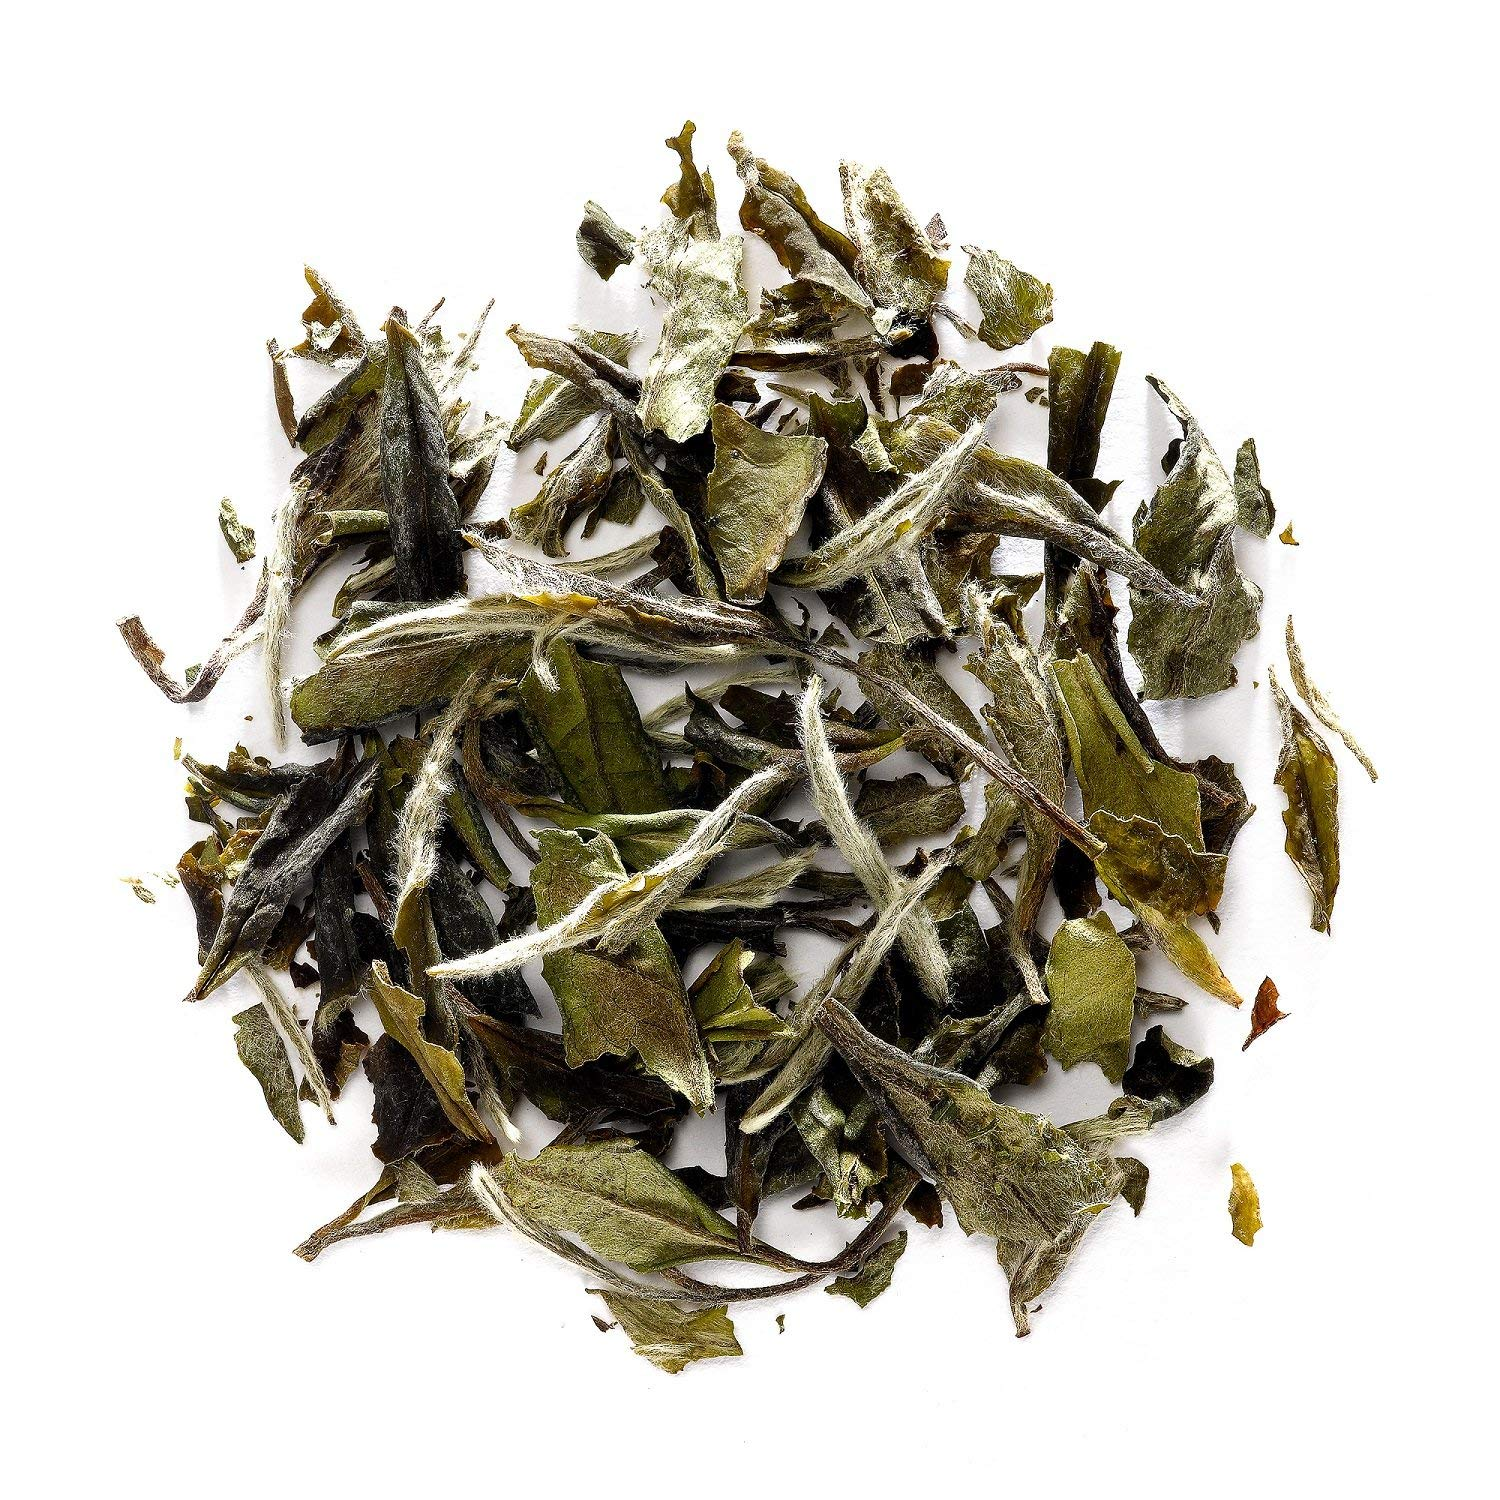 White Peony White Tea - Bai Mu Dan Chinese White Tea - Pai Mu Tan Loose Leaf Tea From China 50g 1.76 Ounce